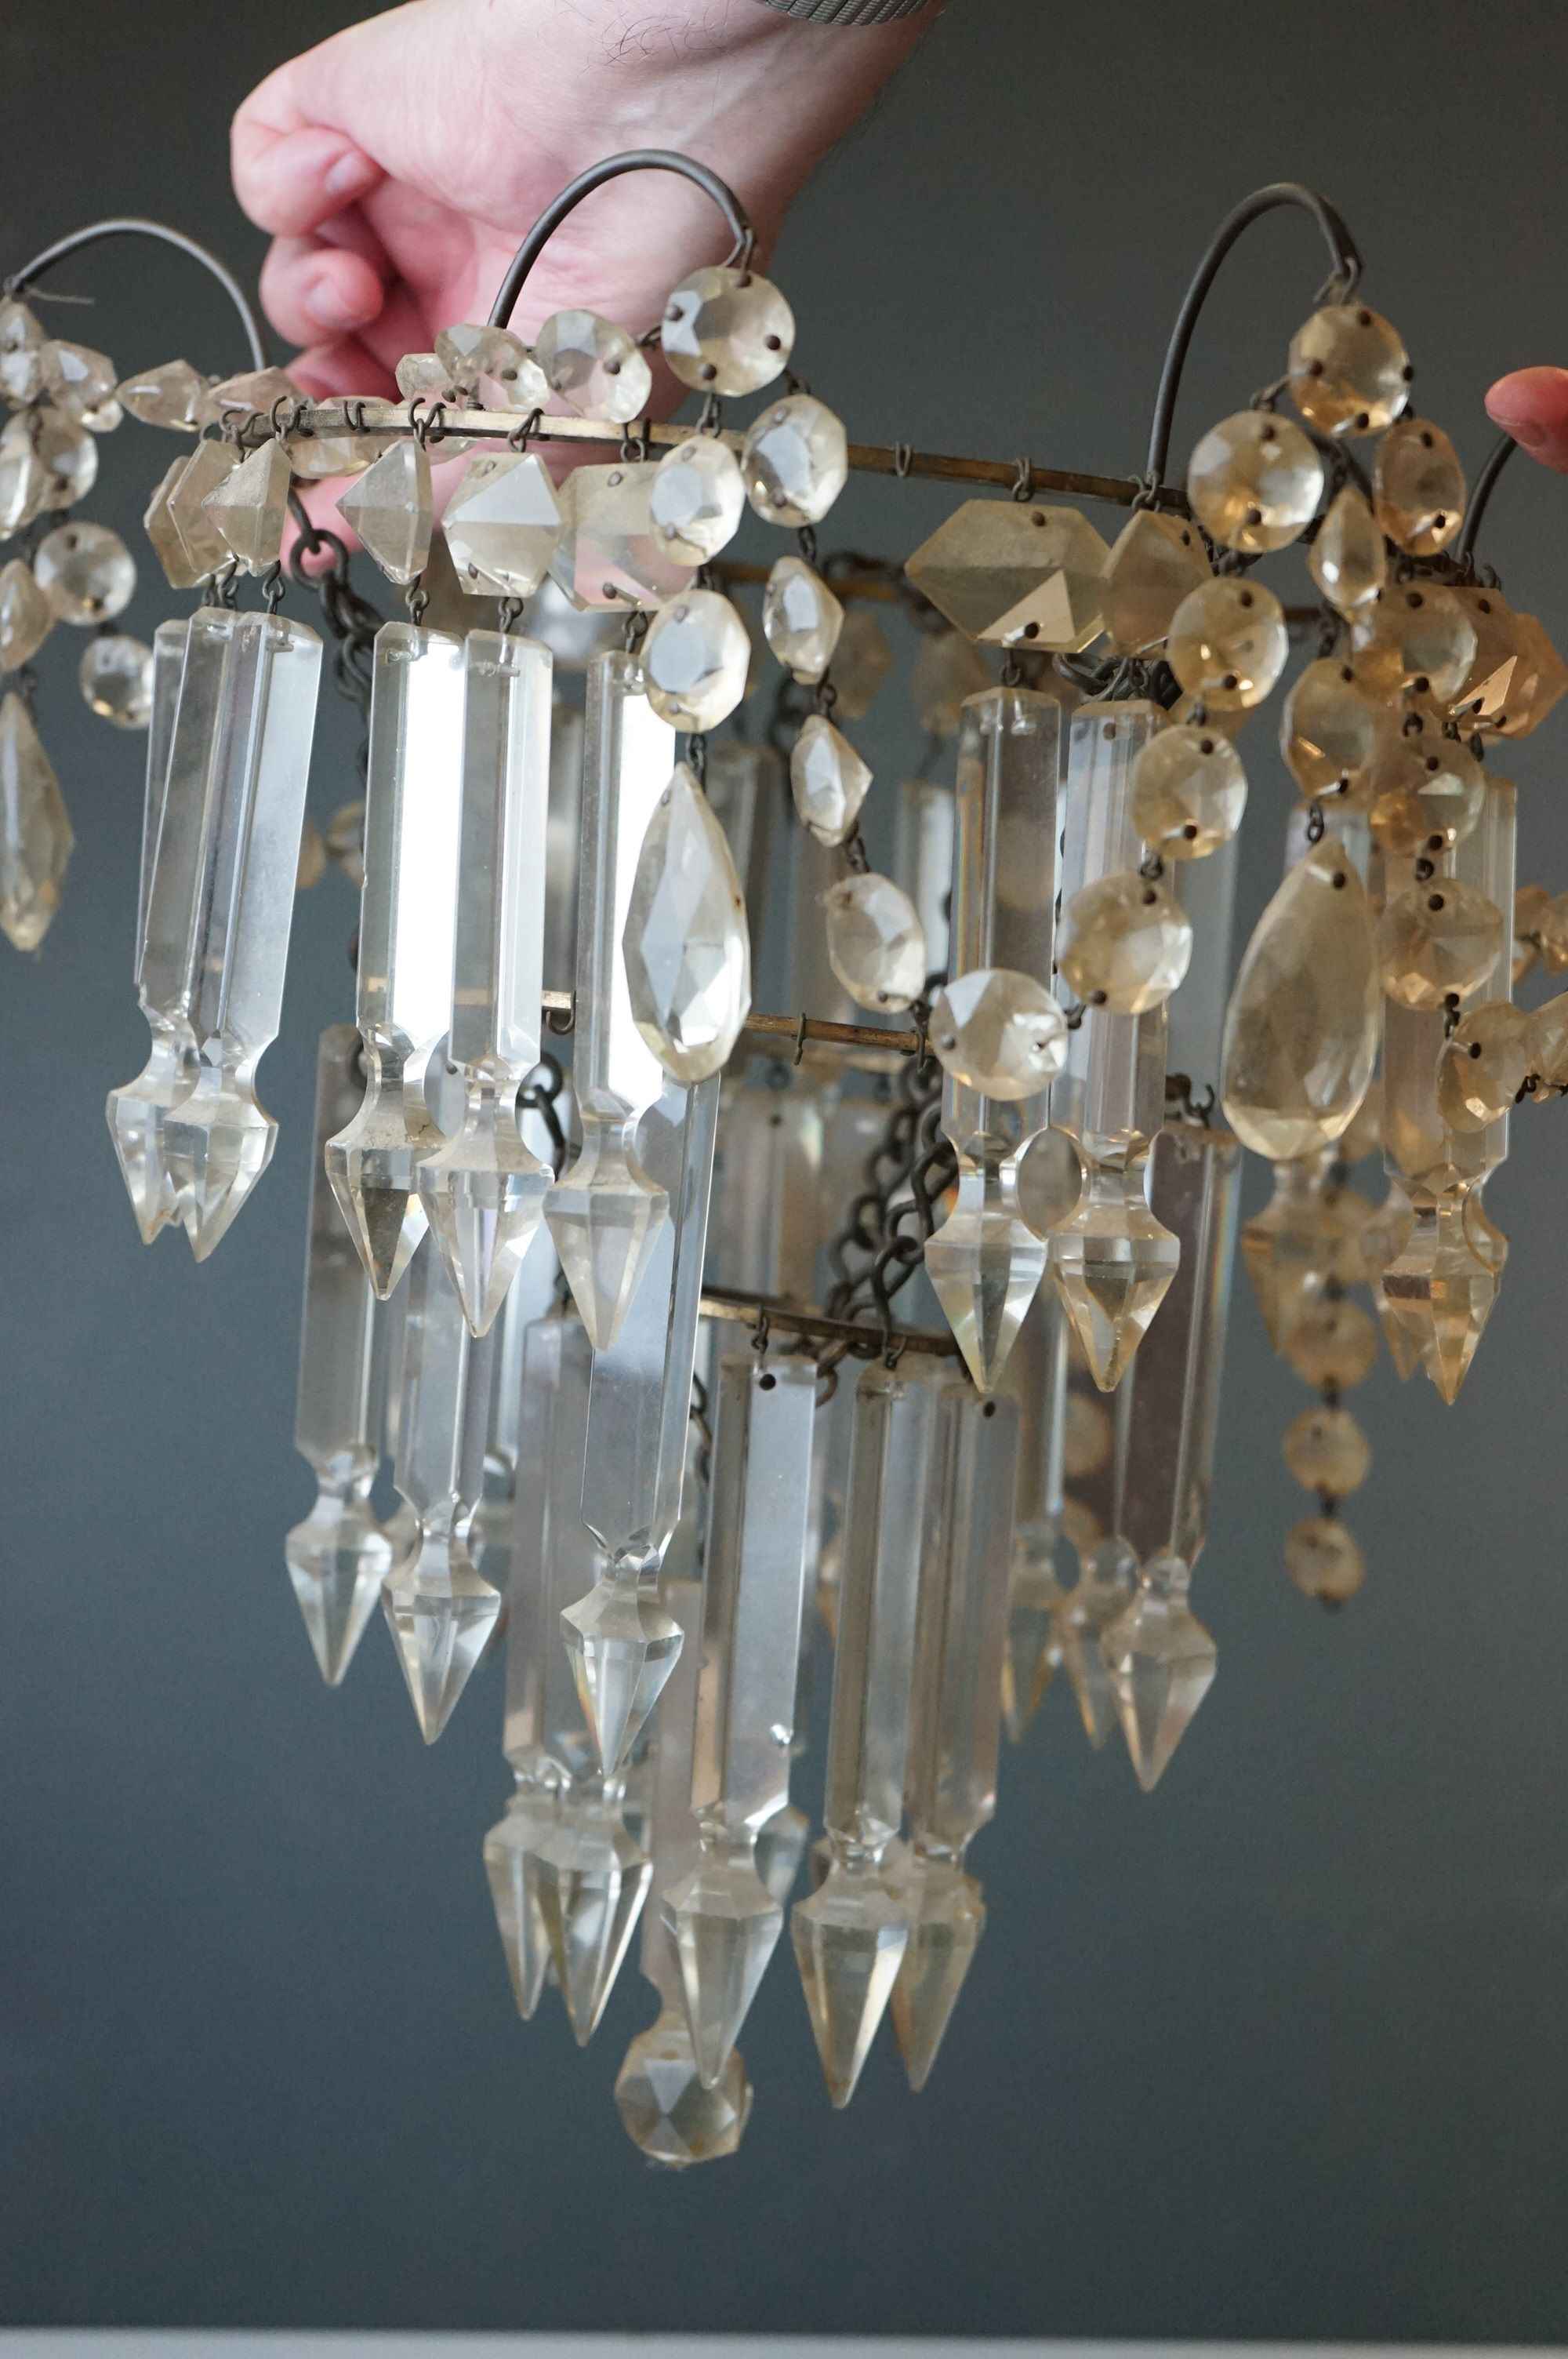 A antique three tier chandelier with glass droplets.